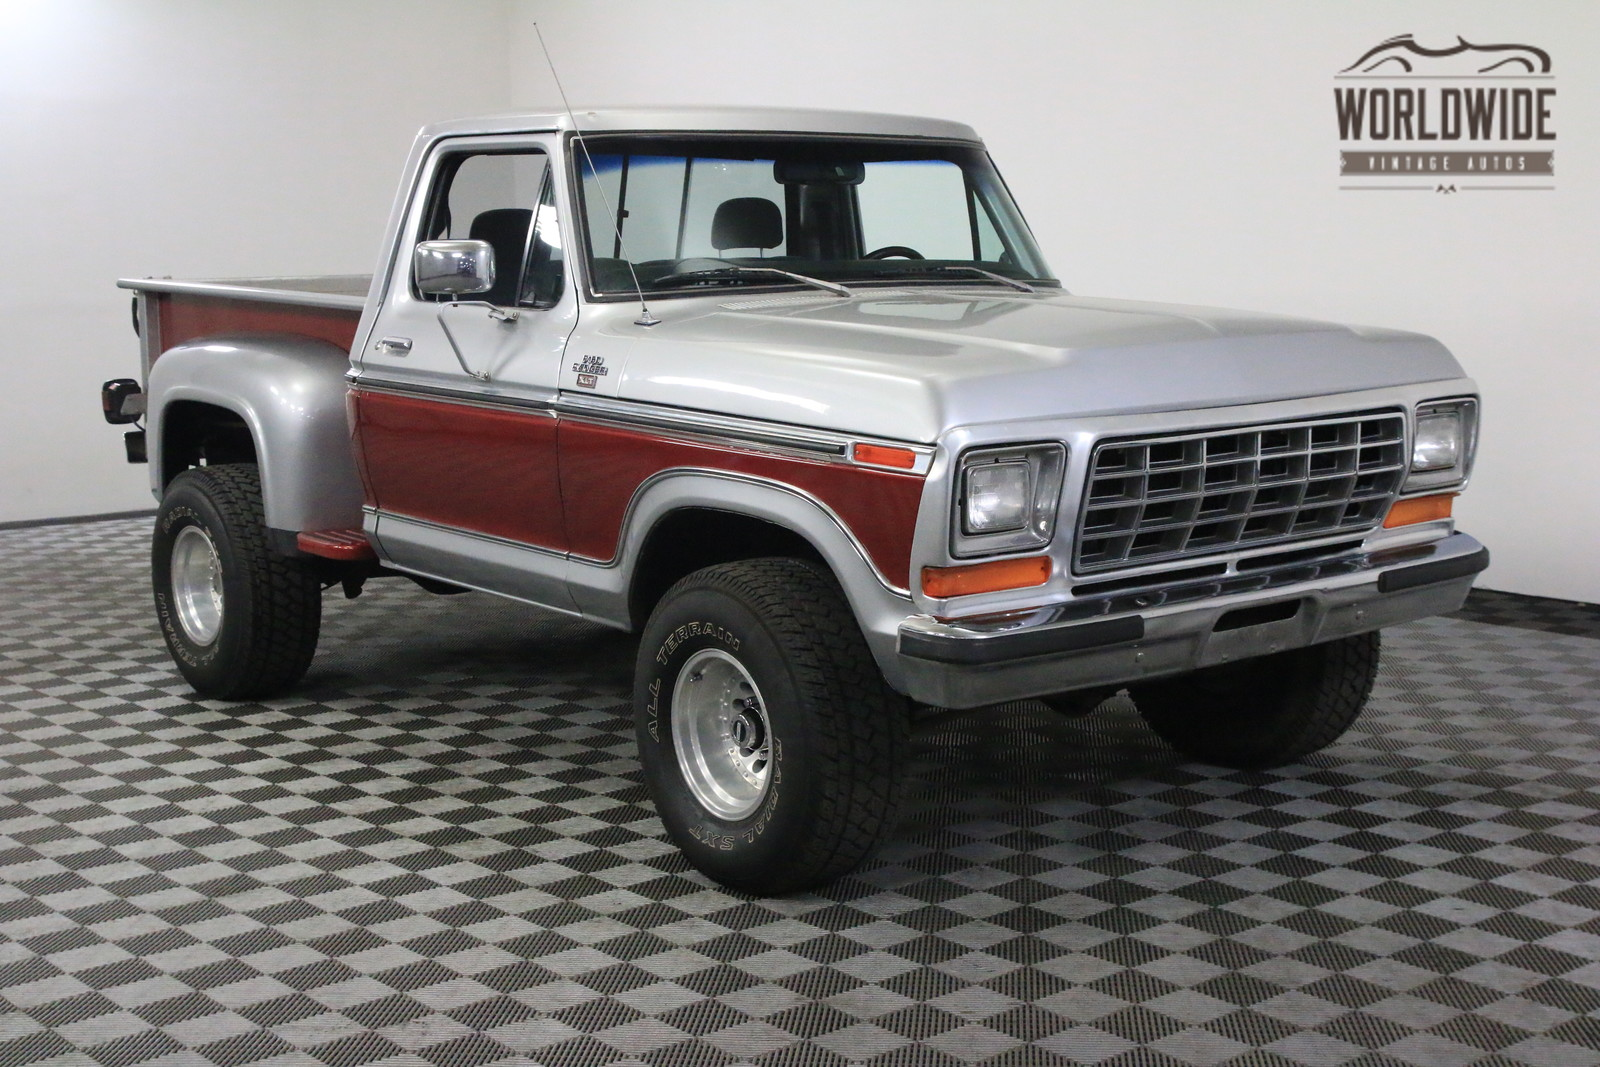 1977 red xlt 4x4 stepside 73k original miles for sale ford f150 xlt 4x4 stepside 73k original. Black Bedroom Furniture Sets. Home Design Ideas